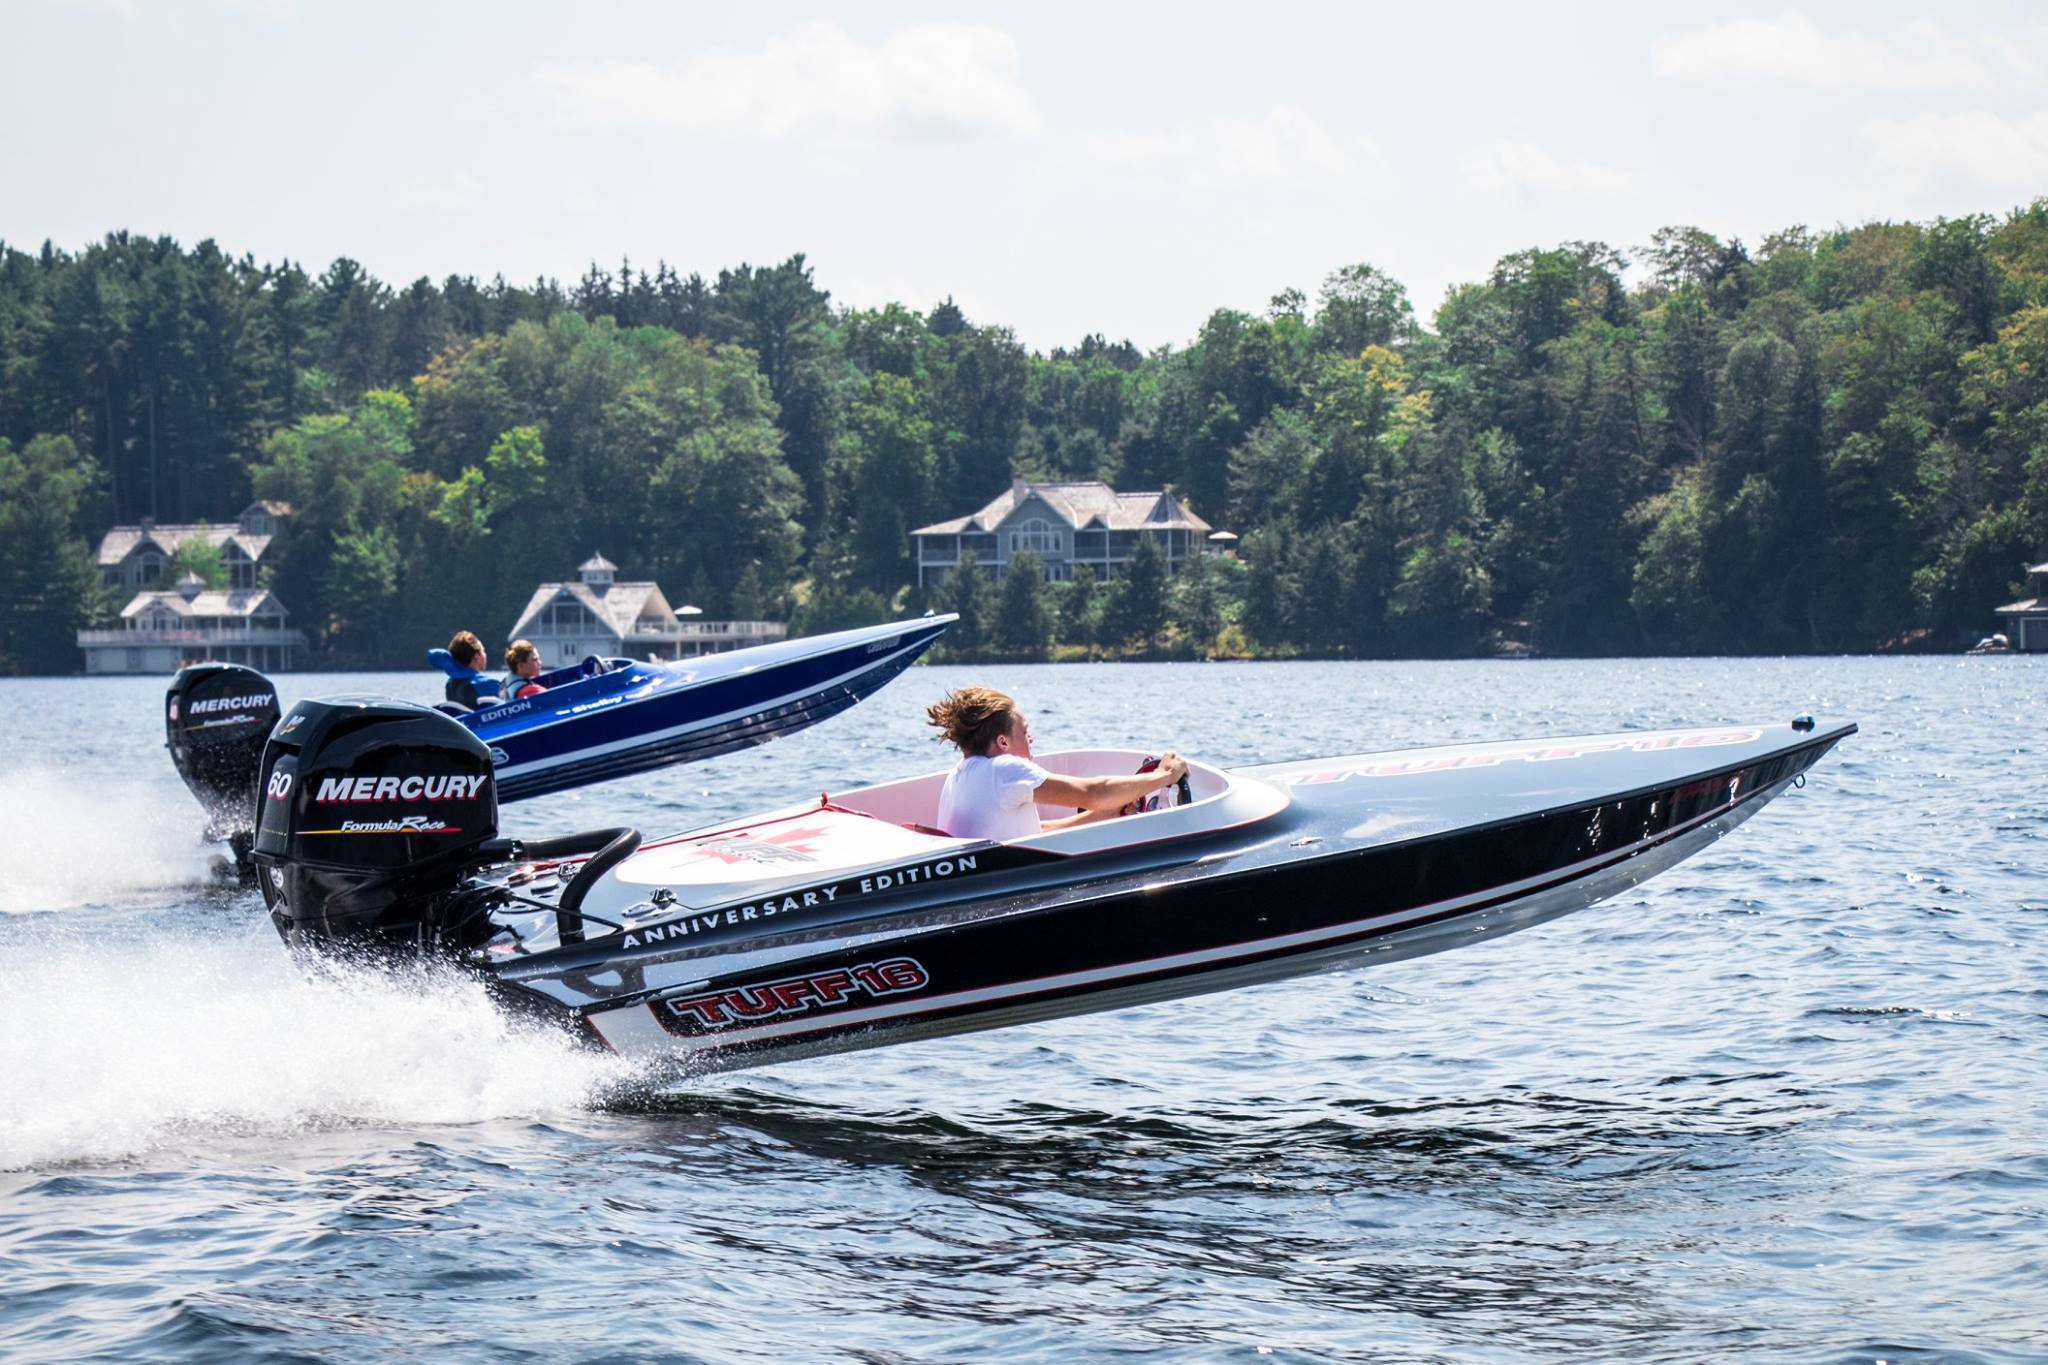 The Tuff 16 is a top performing small boat, about 60 MPH with a 60 and the same attention to detail seen in all Tuff Marine boats.